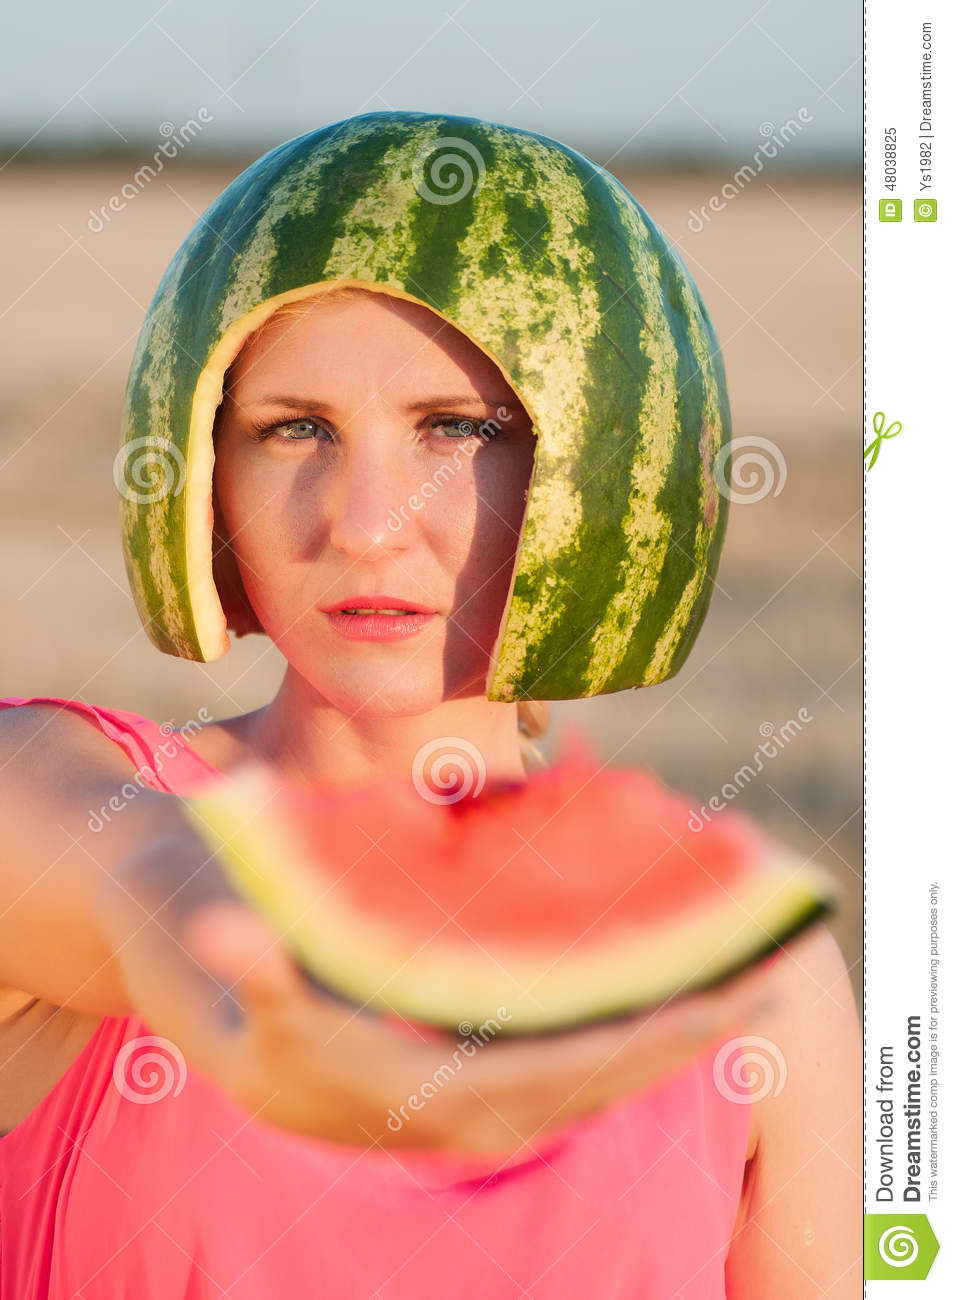 Woman Model With Water-melon On Head Stock Photo - Image: 48038757